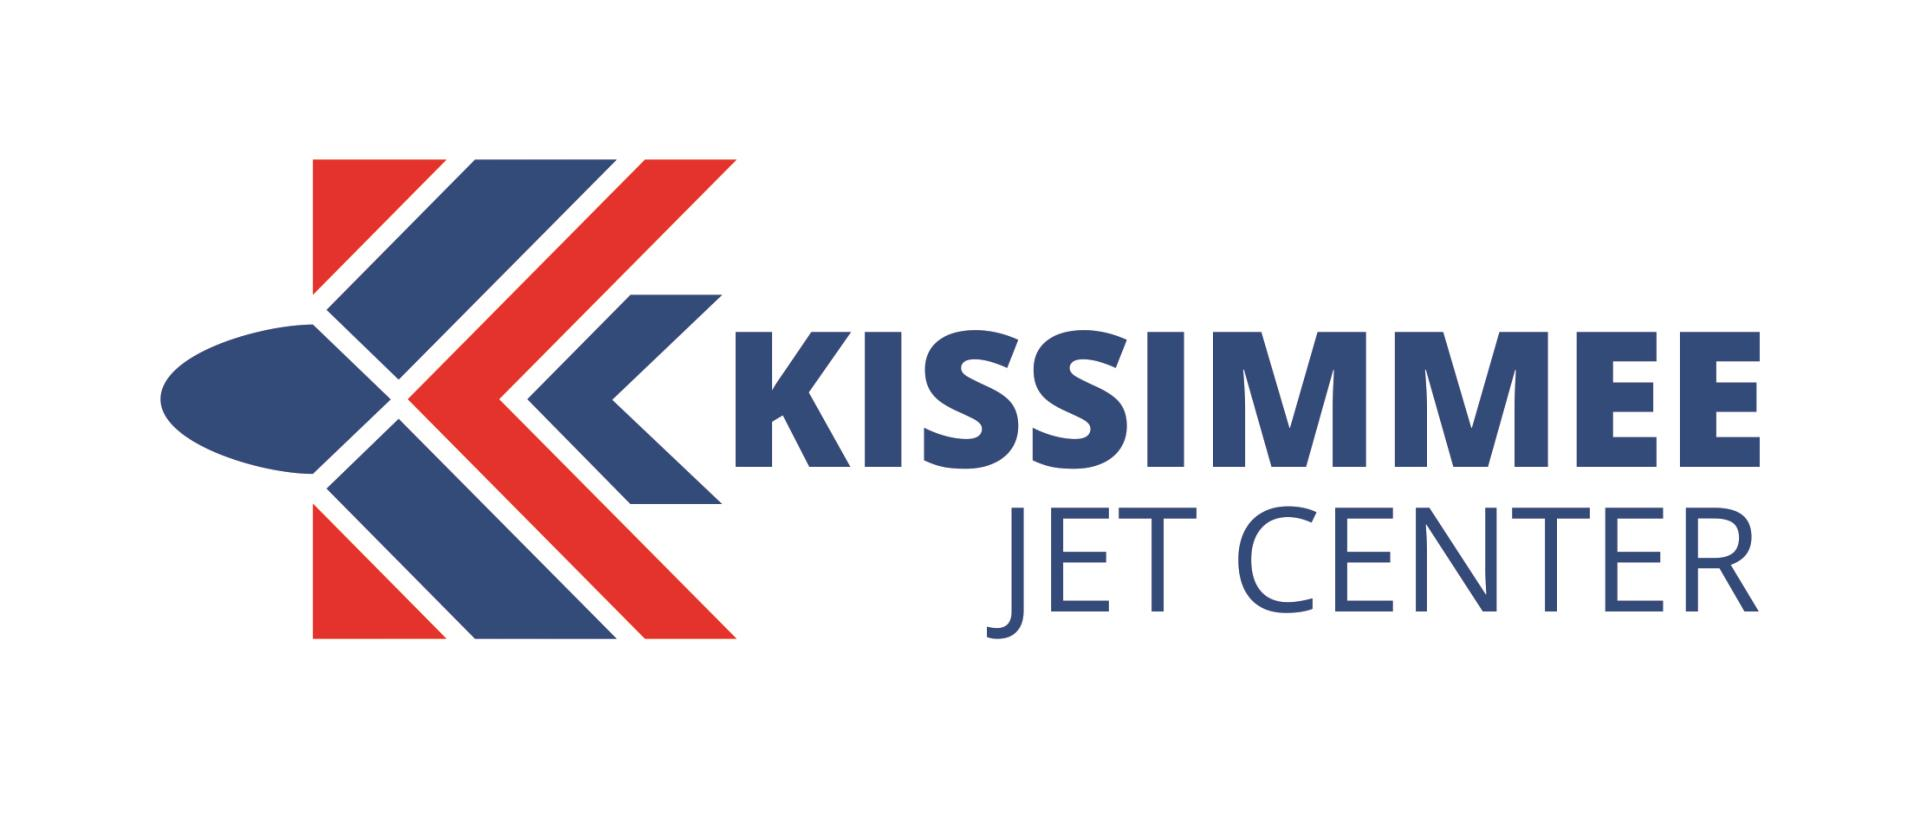 KISSIMMEE-JET-CENTER-fundo-branco (1)